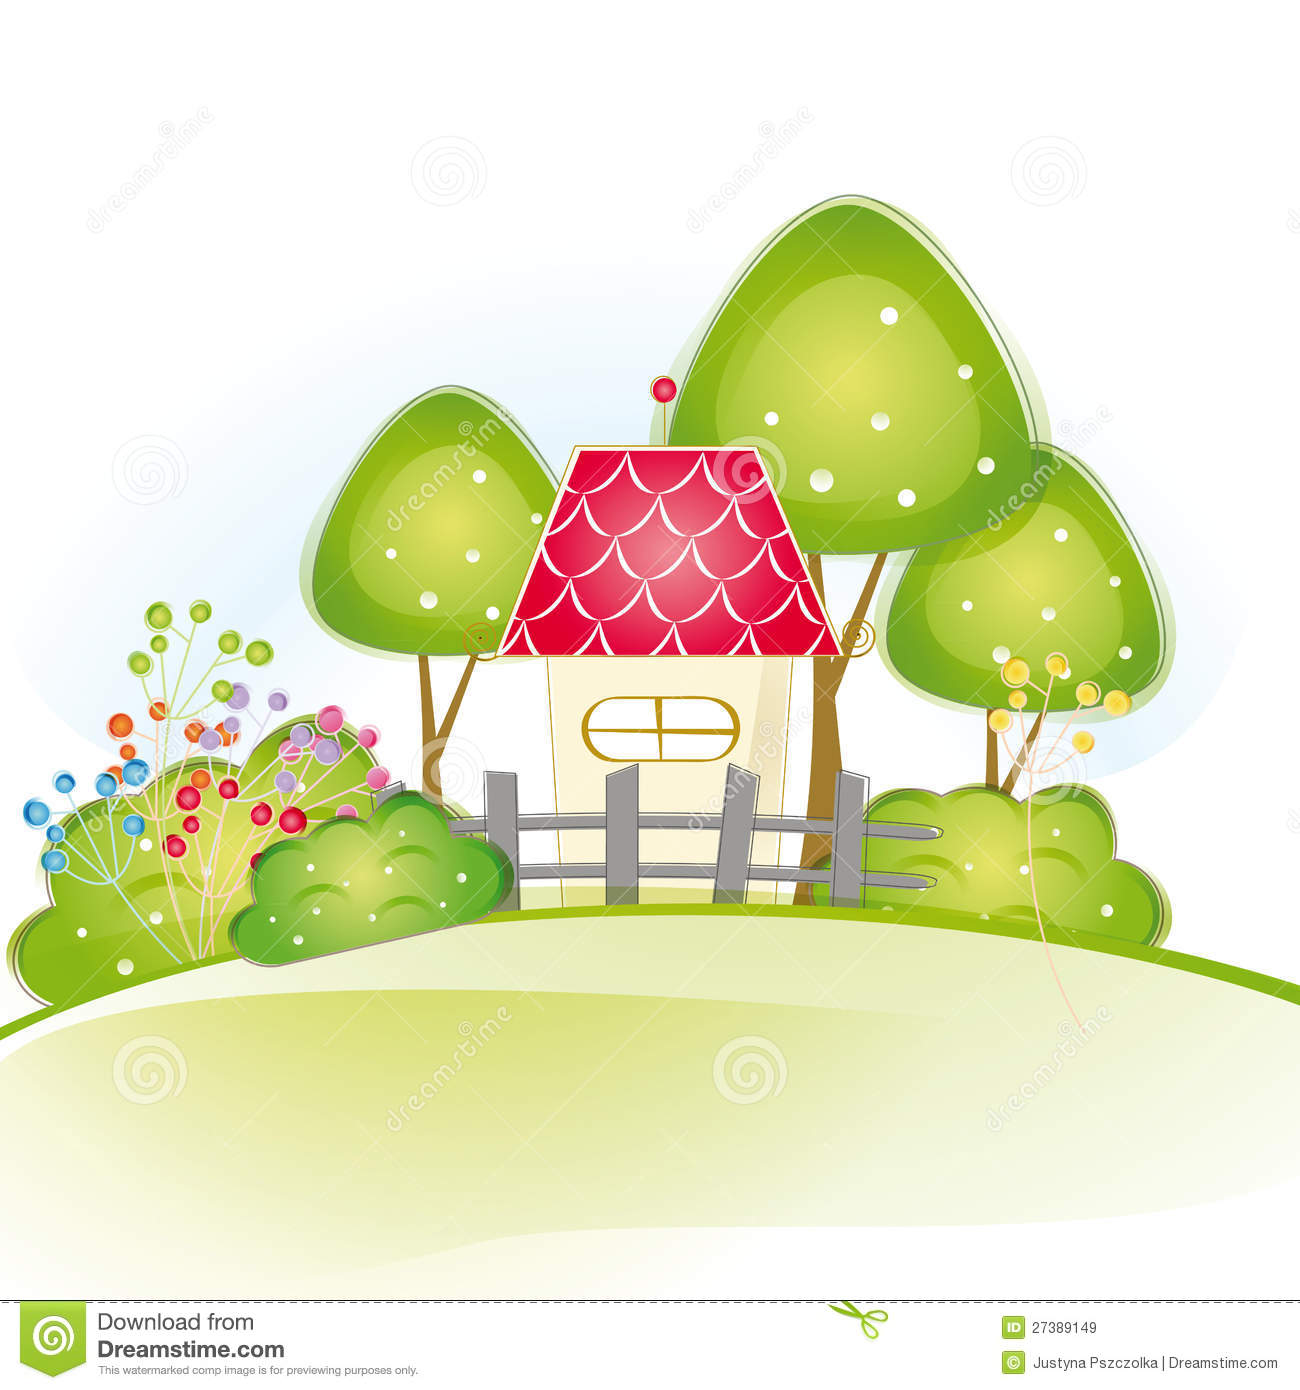 Cute house royalty free stock images image 27389149 for Cute house images